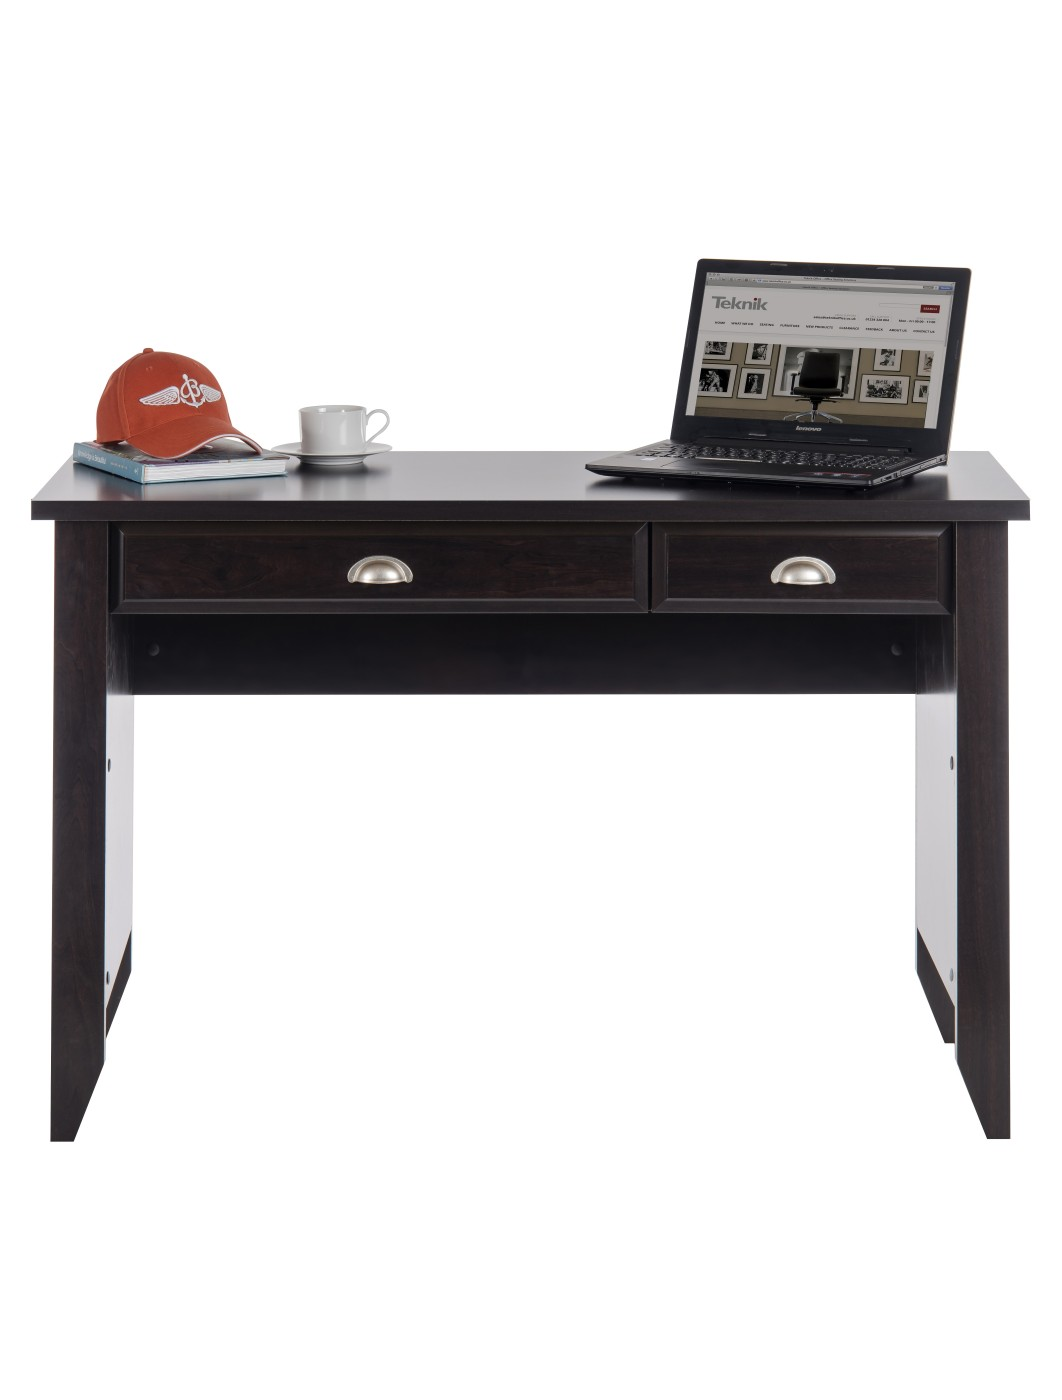 teknik laptop desk jamocha wood 5409936 121 office furniture